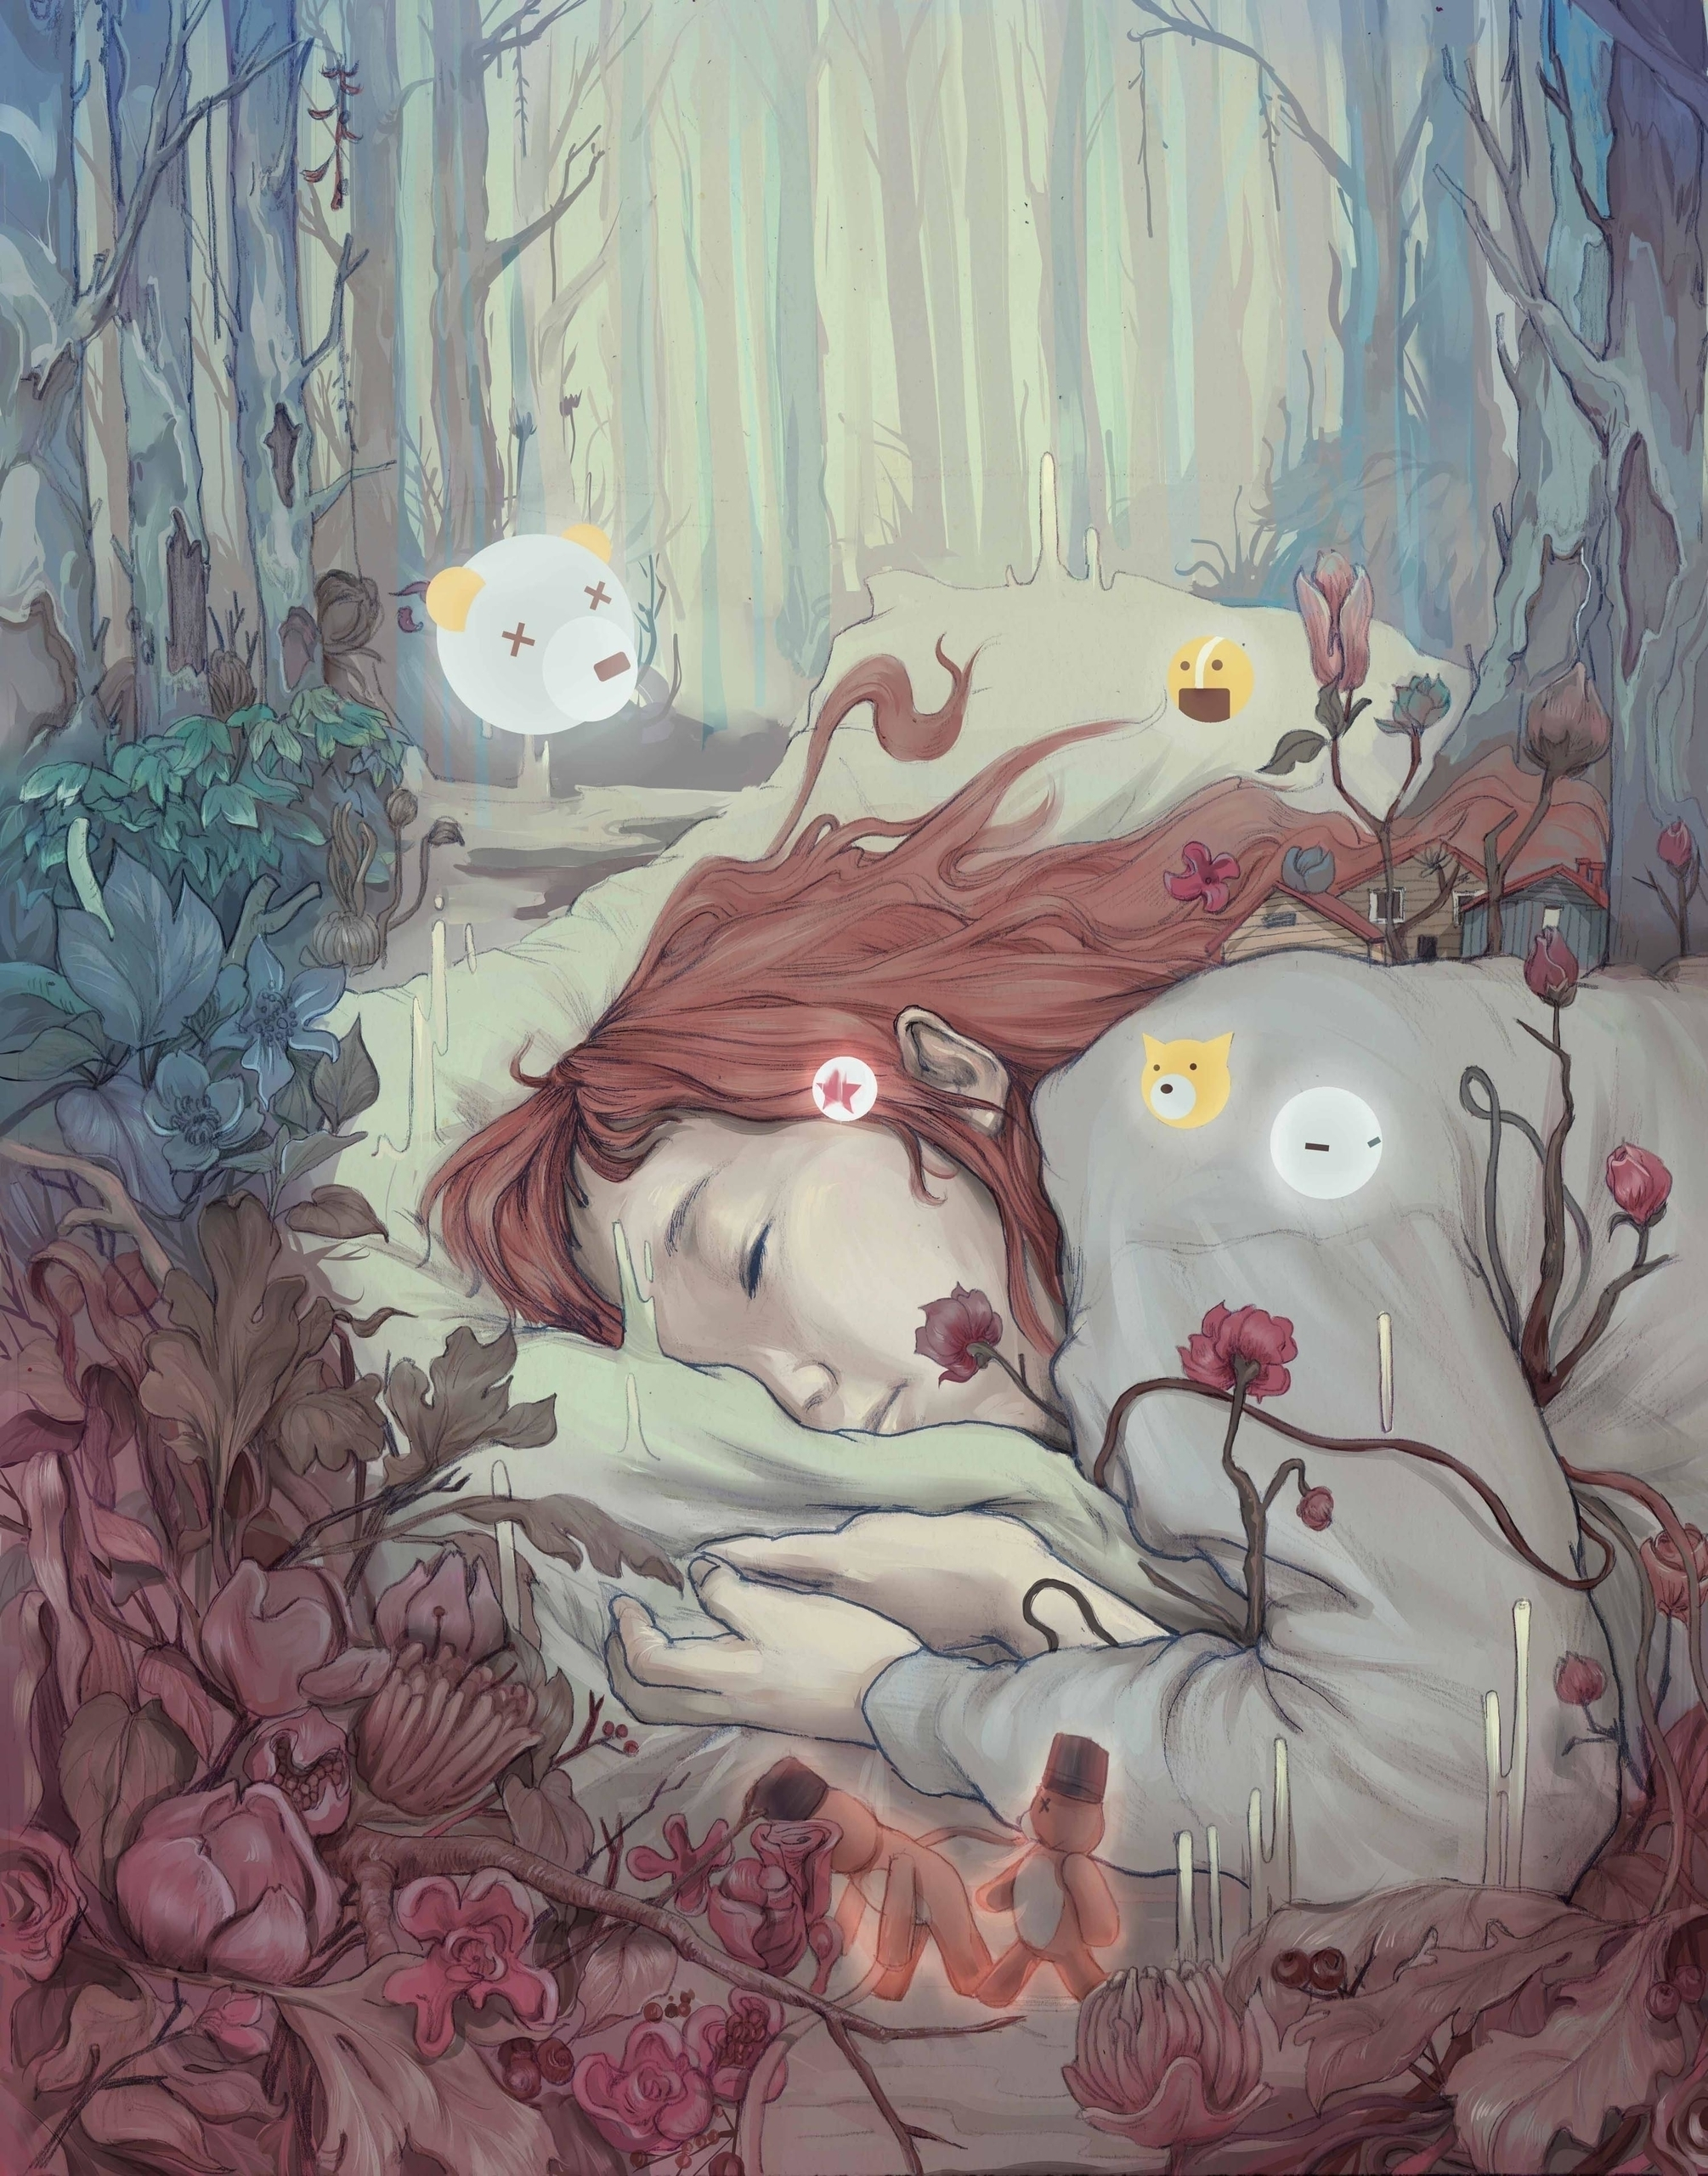 reeo, dream, girl, illustration - reeozerkos | ello